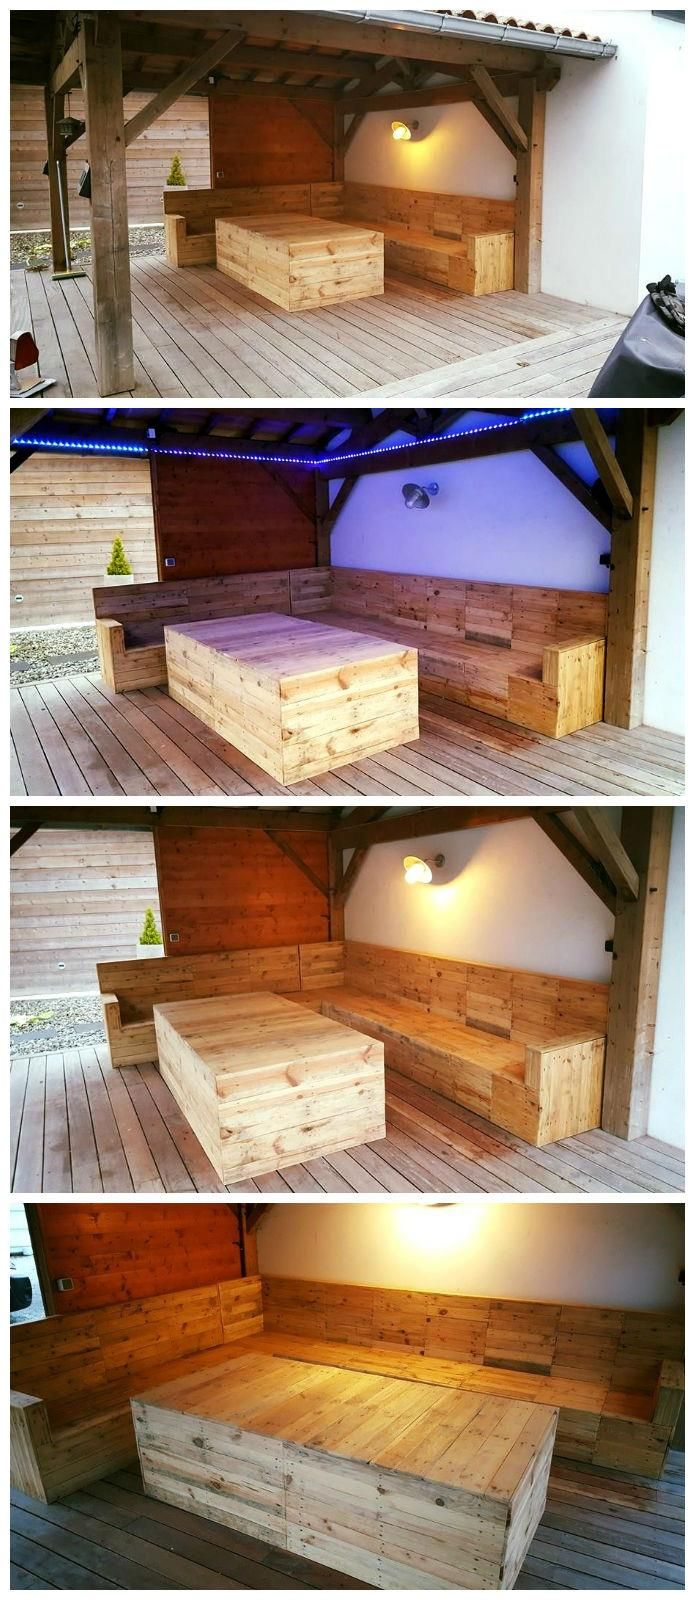 Diy pallets of wood 30 plans and projects pallet furniture ideas - Check This Out The Diy Pallet Deck Furniture Or Seating Project Under Gazebo The Targeted